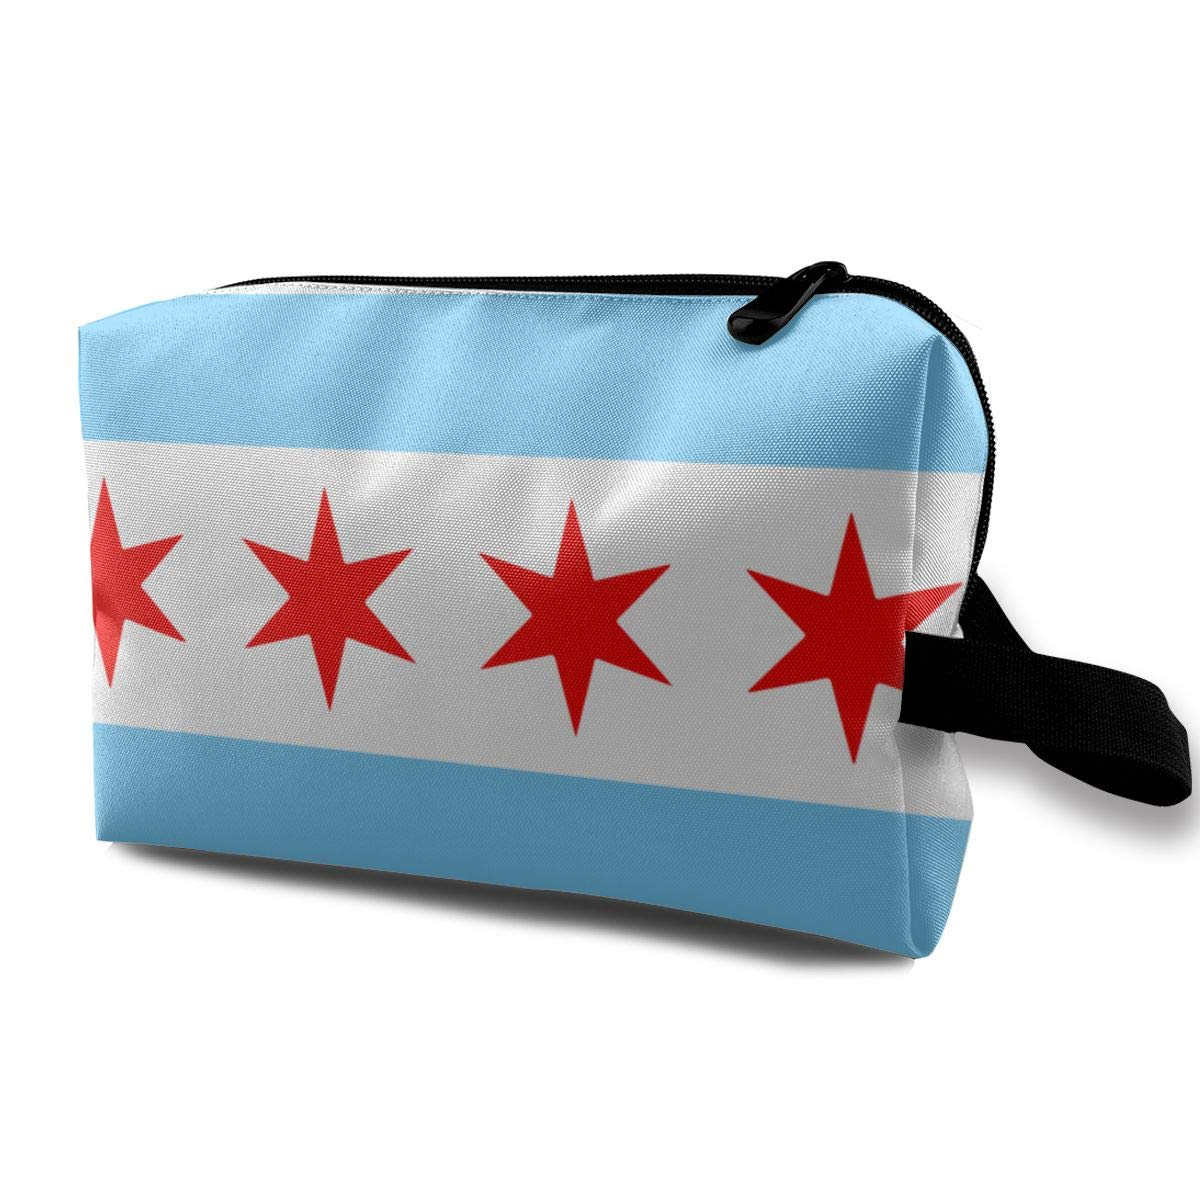 Travel Pouch Storage Bags Baskets Cosmetic Makeup Bag Chicago Stars Flag Blue White Stripes